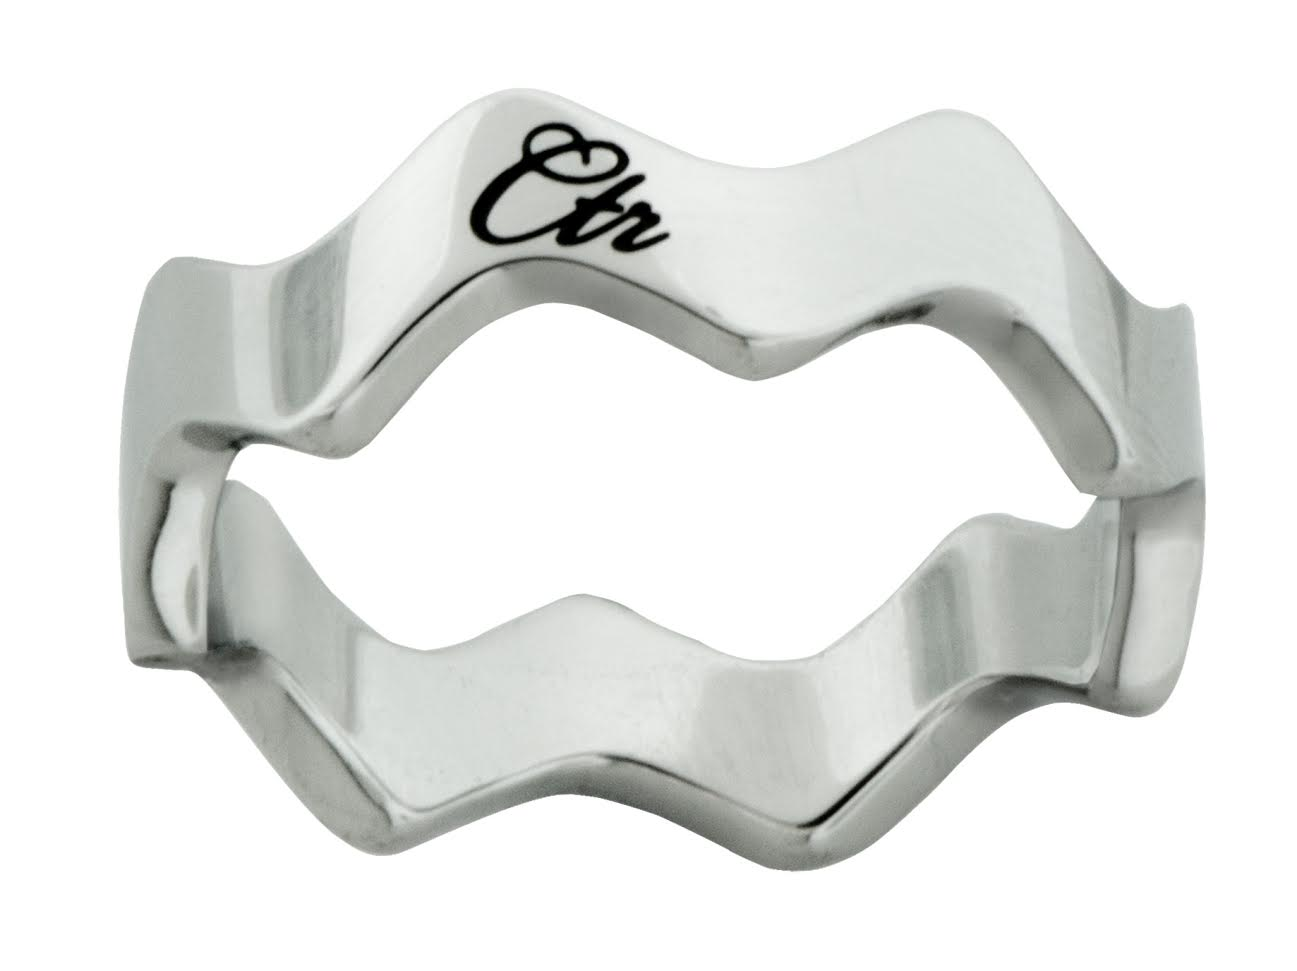 Zara CTR Ring - Stainless Steel